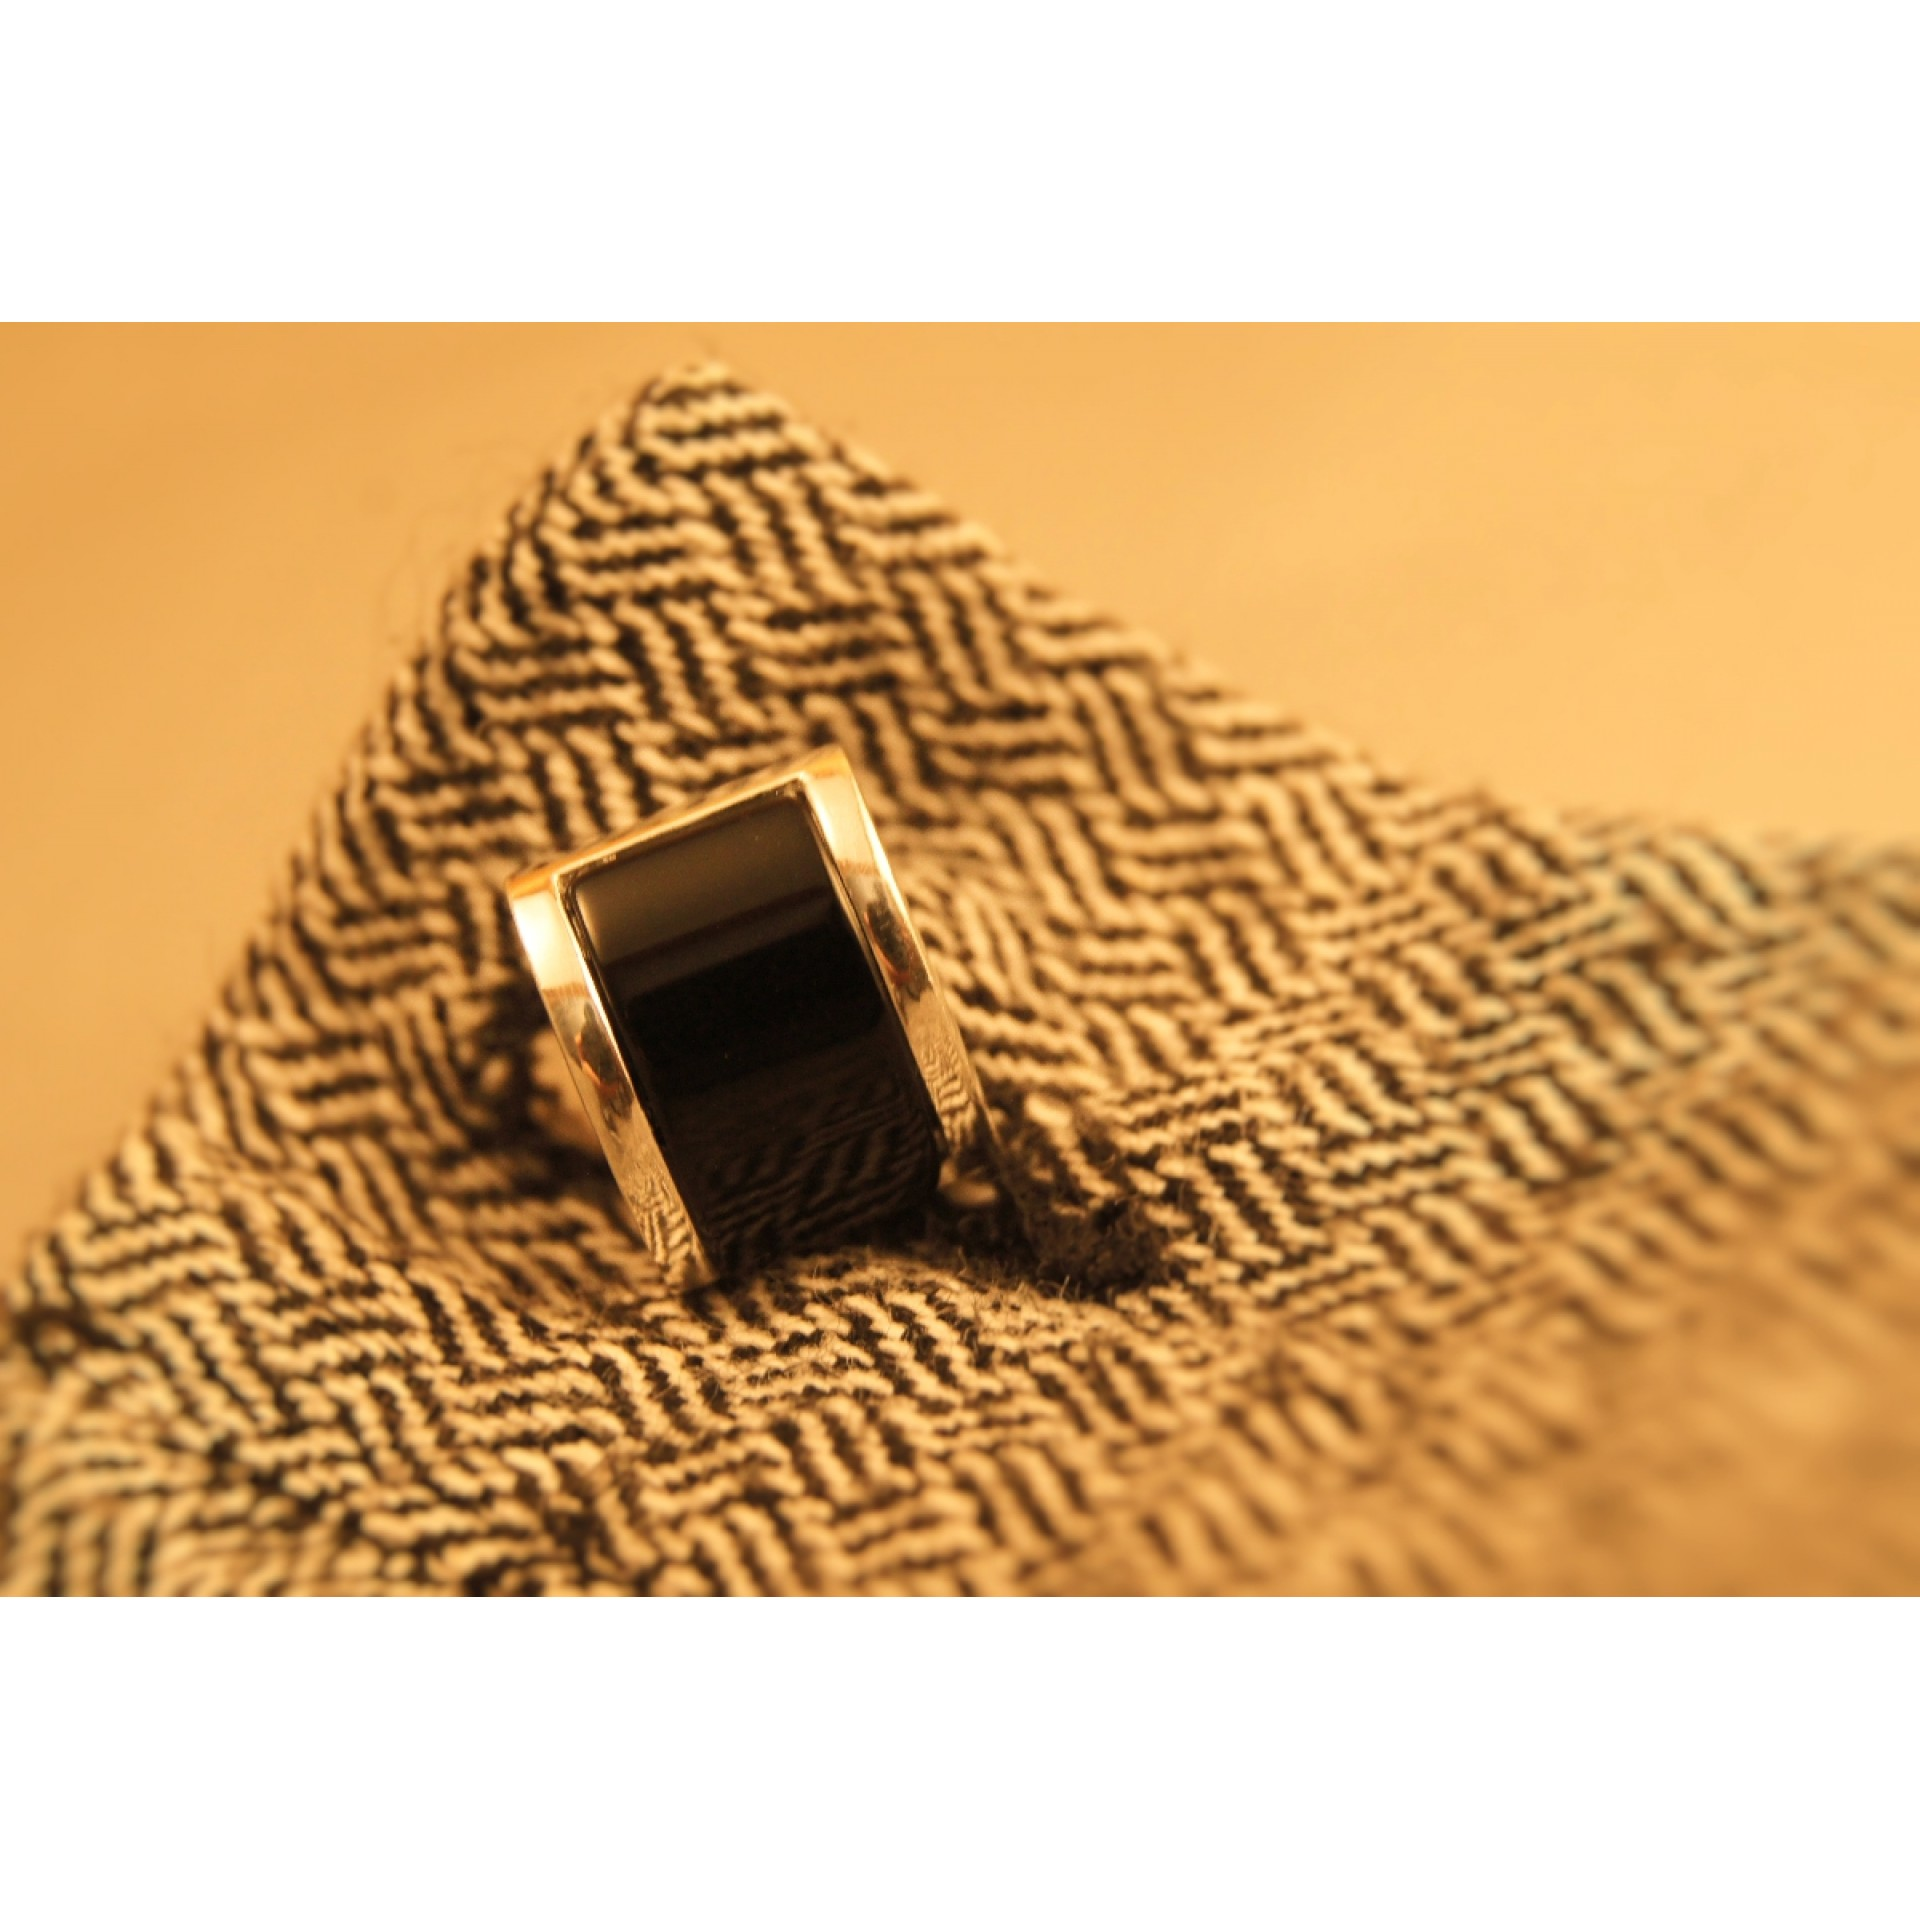 The Black Onyx silver cuff links for men